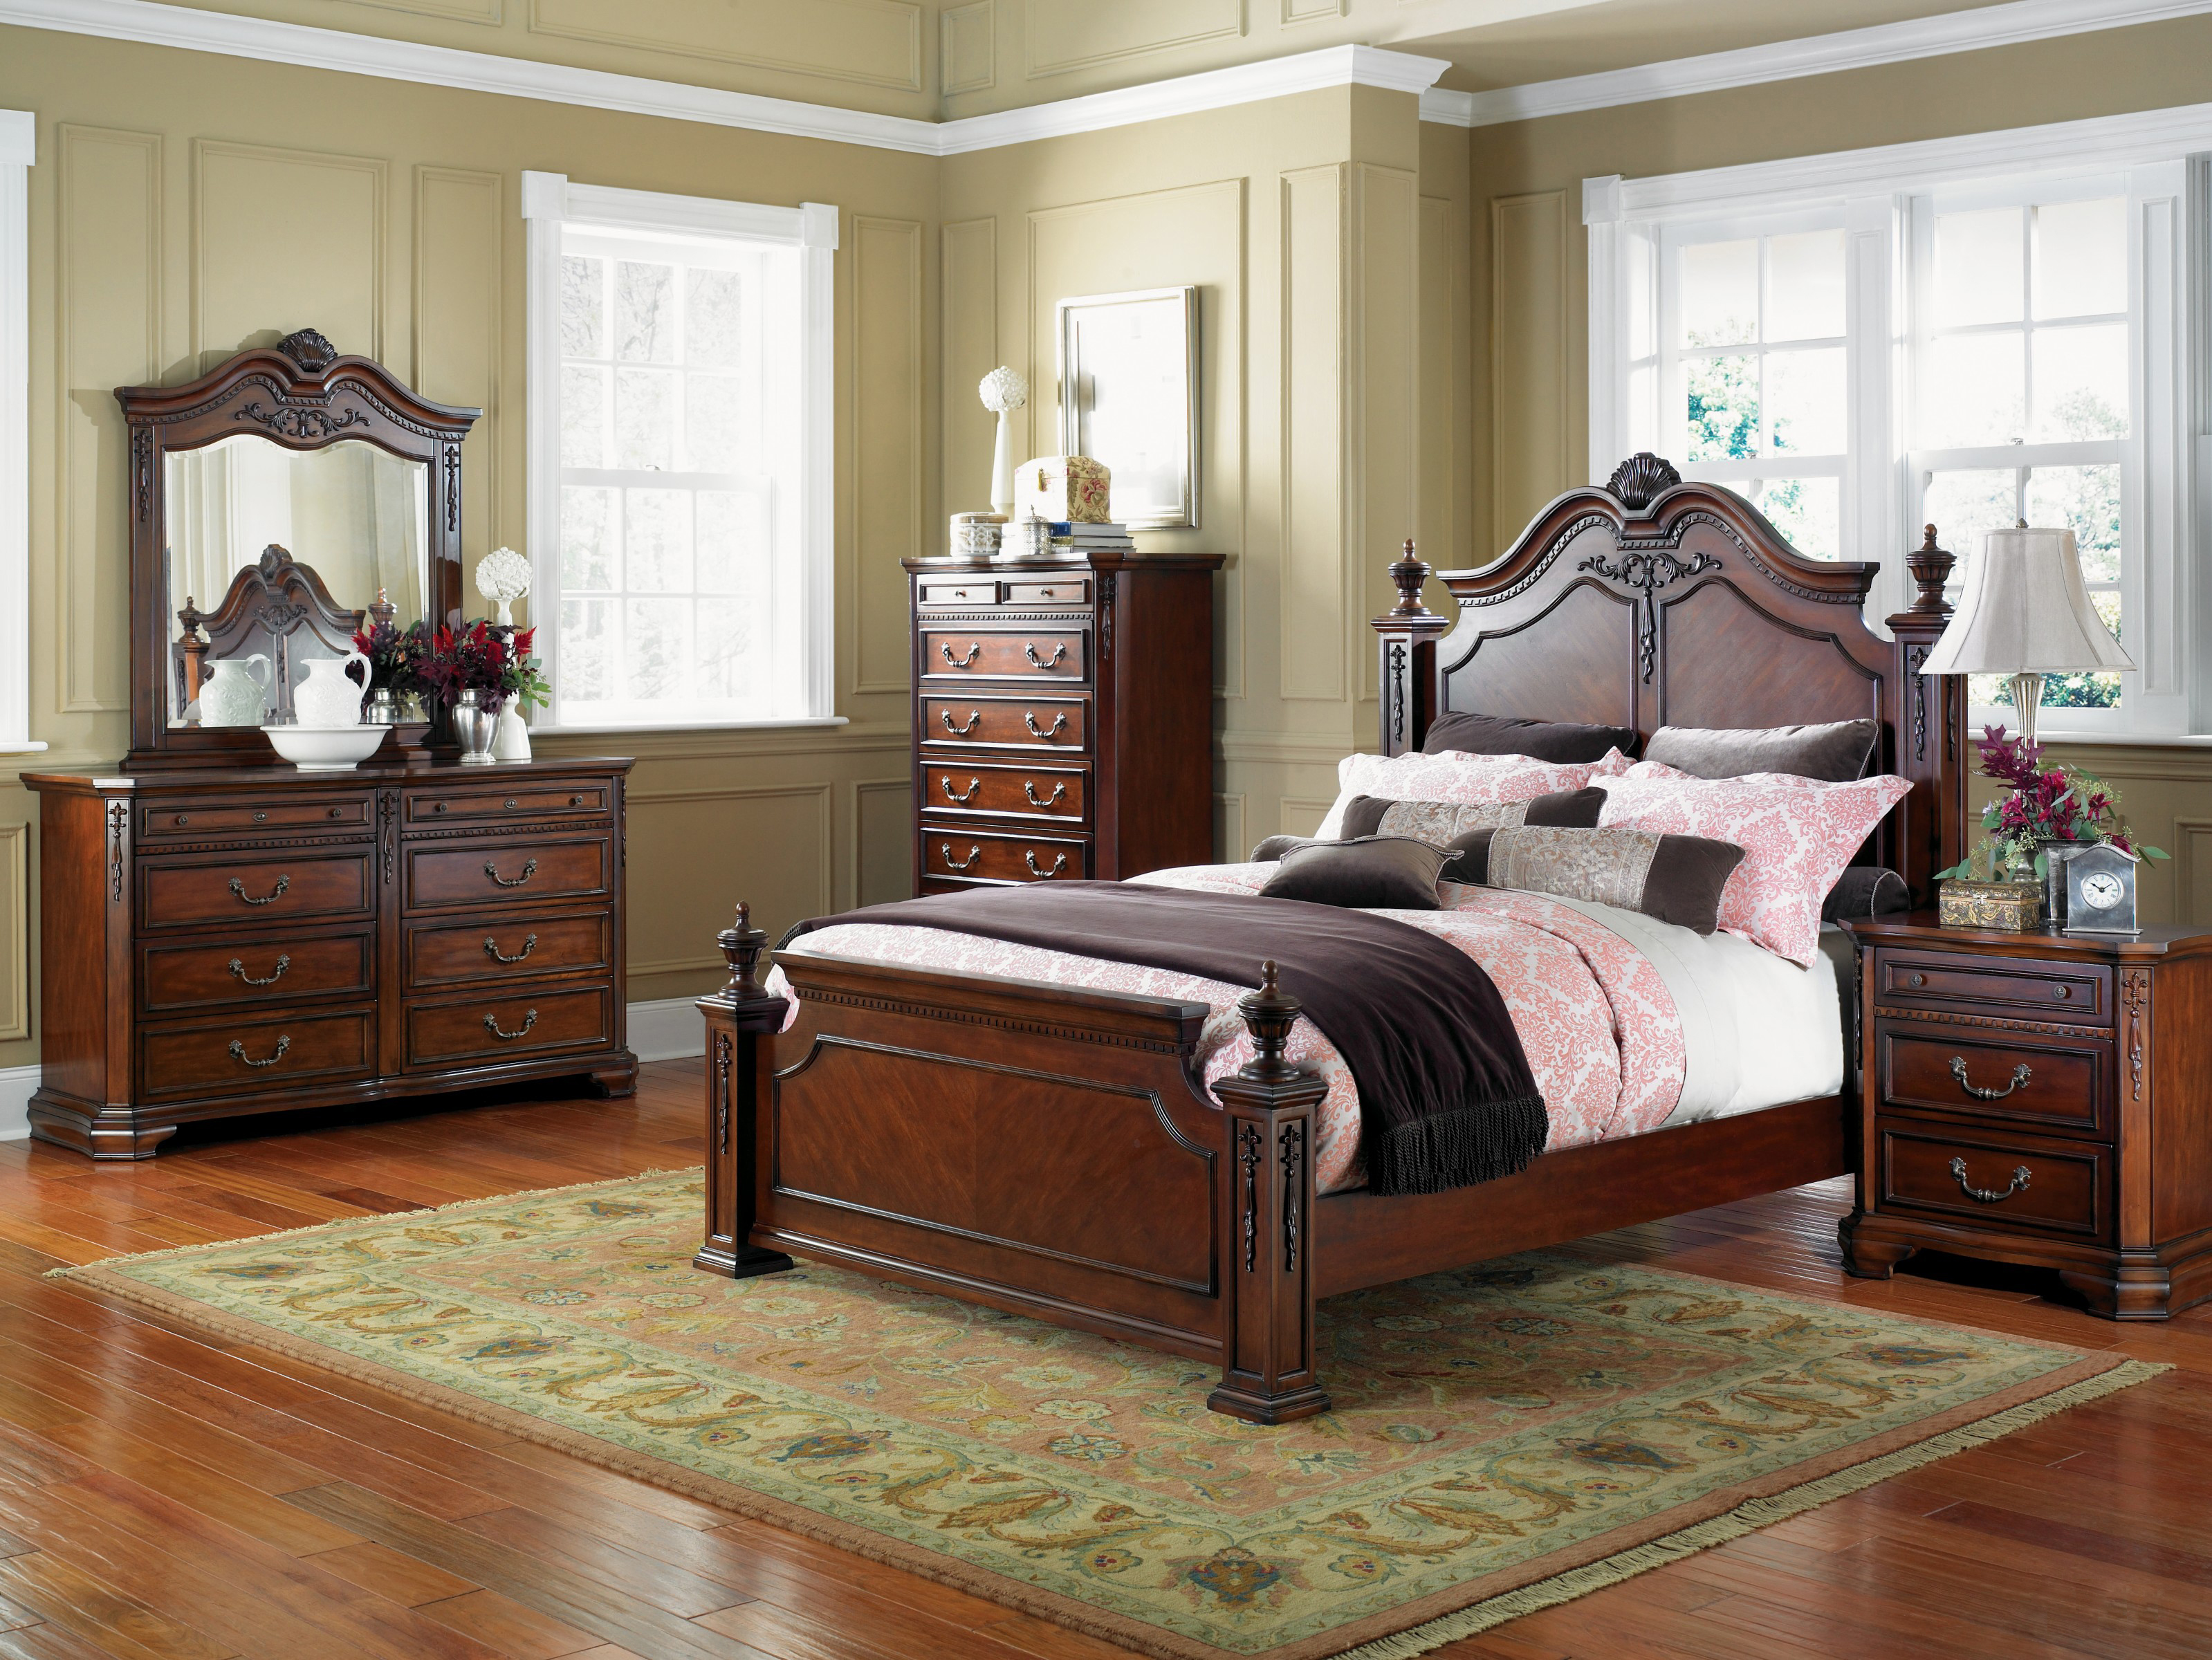 Bedrooms Images Best With Bedroom Furniture Pictures